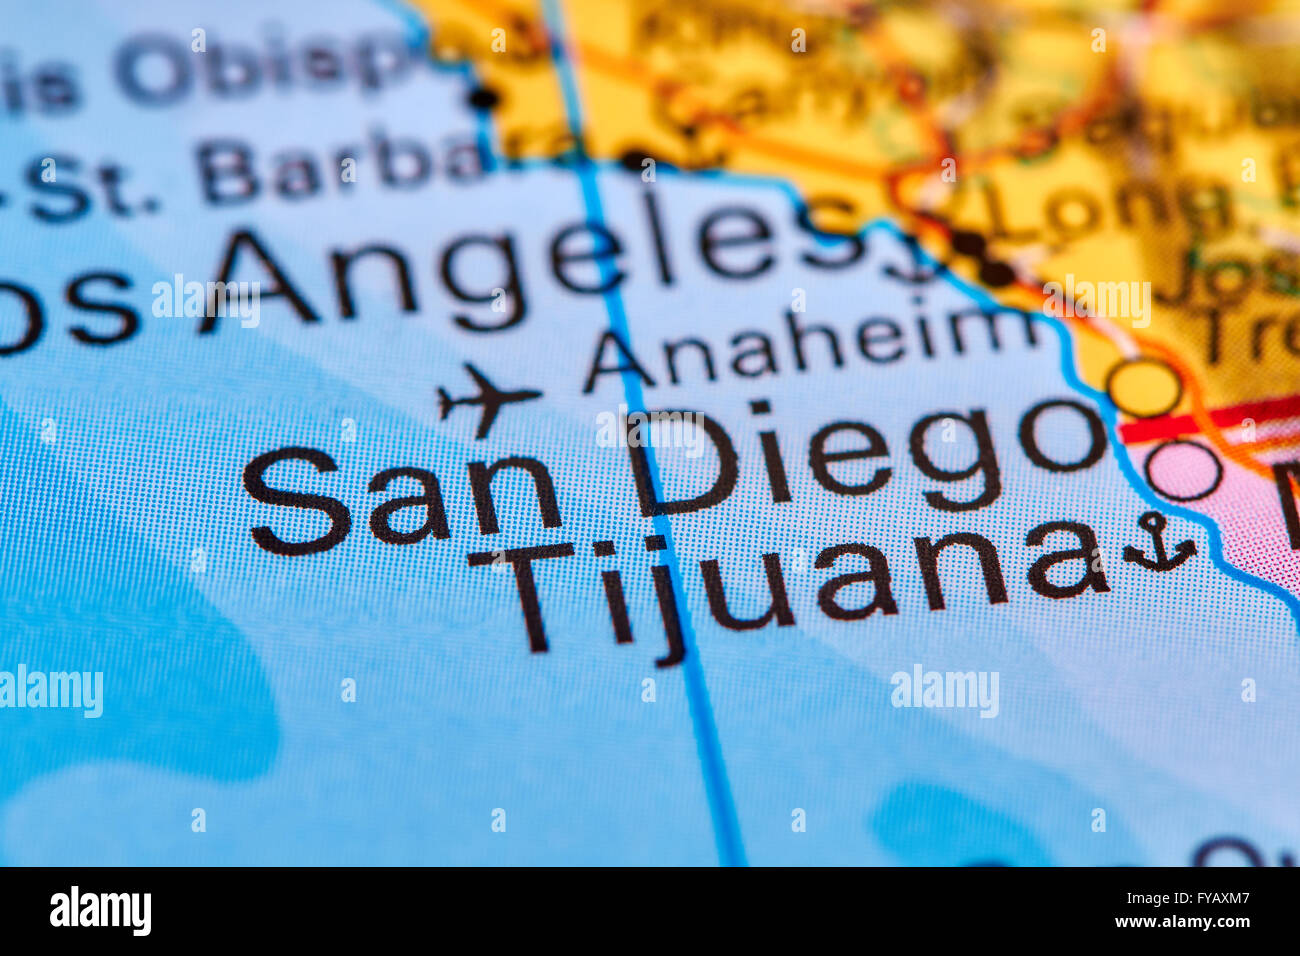 San Diego, City in USA on the World Map Stock Photo: 102888023 - Alamy